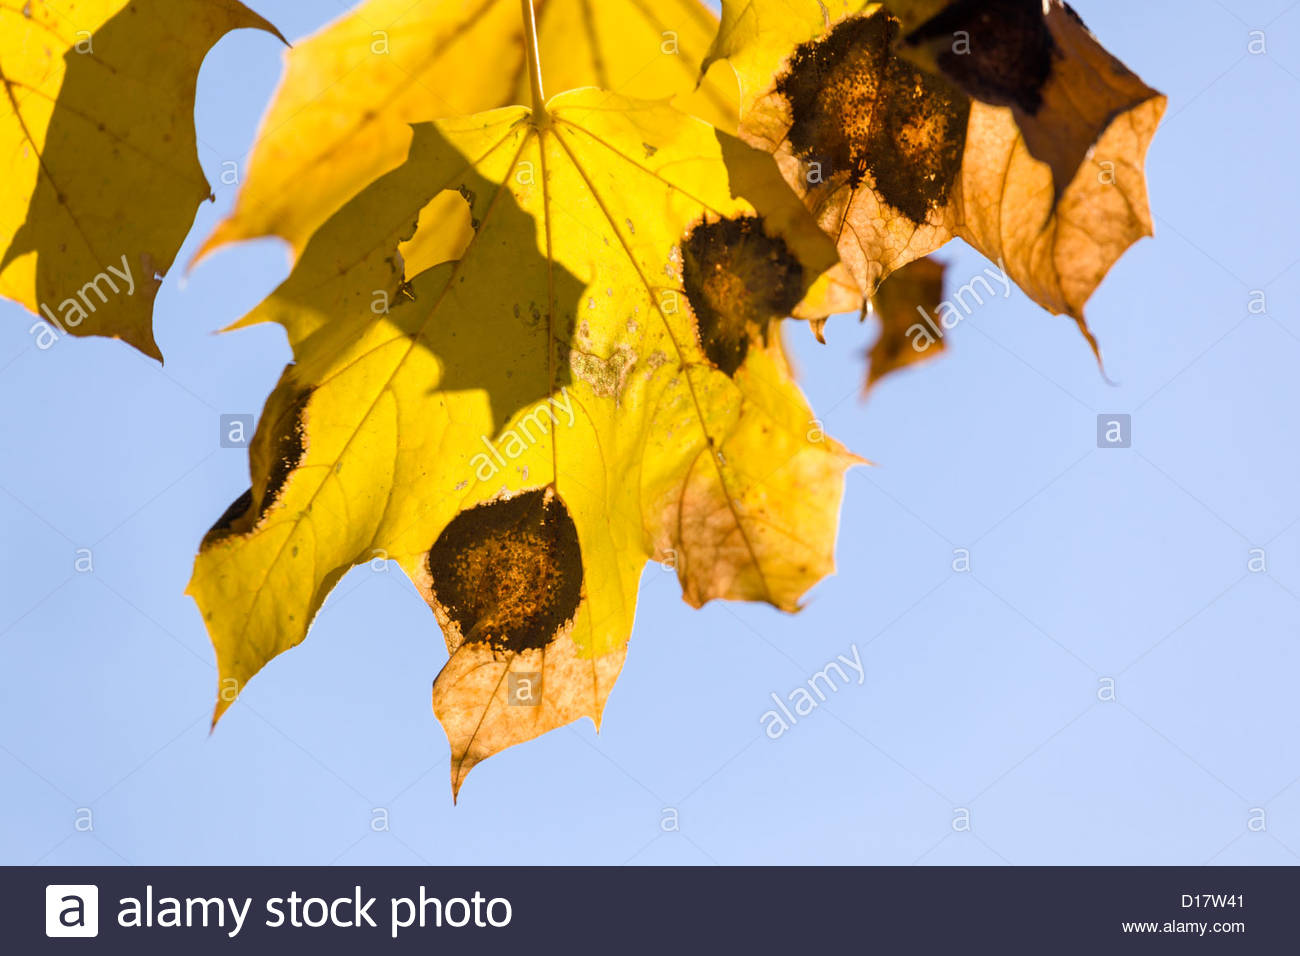 Tar Spot Disease, caused by Rhytisma acerinum fungus, on a maple leaf in autumn in Toronto Ontario Canada - Stock Image